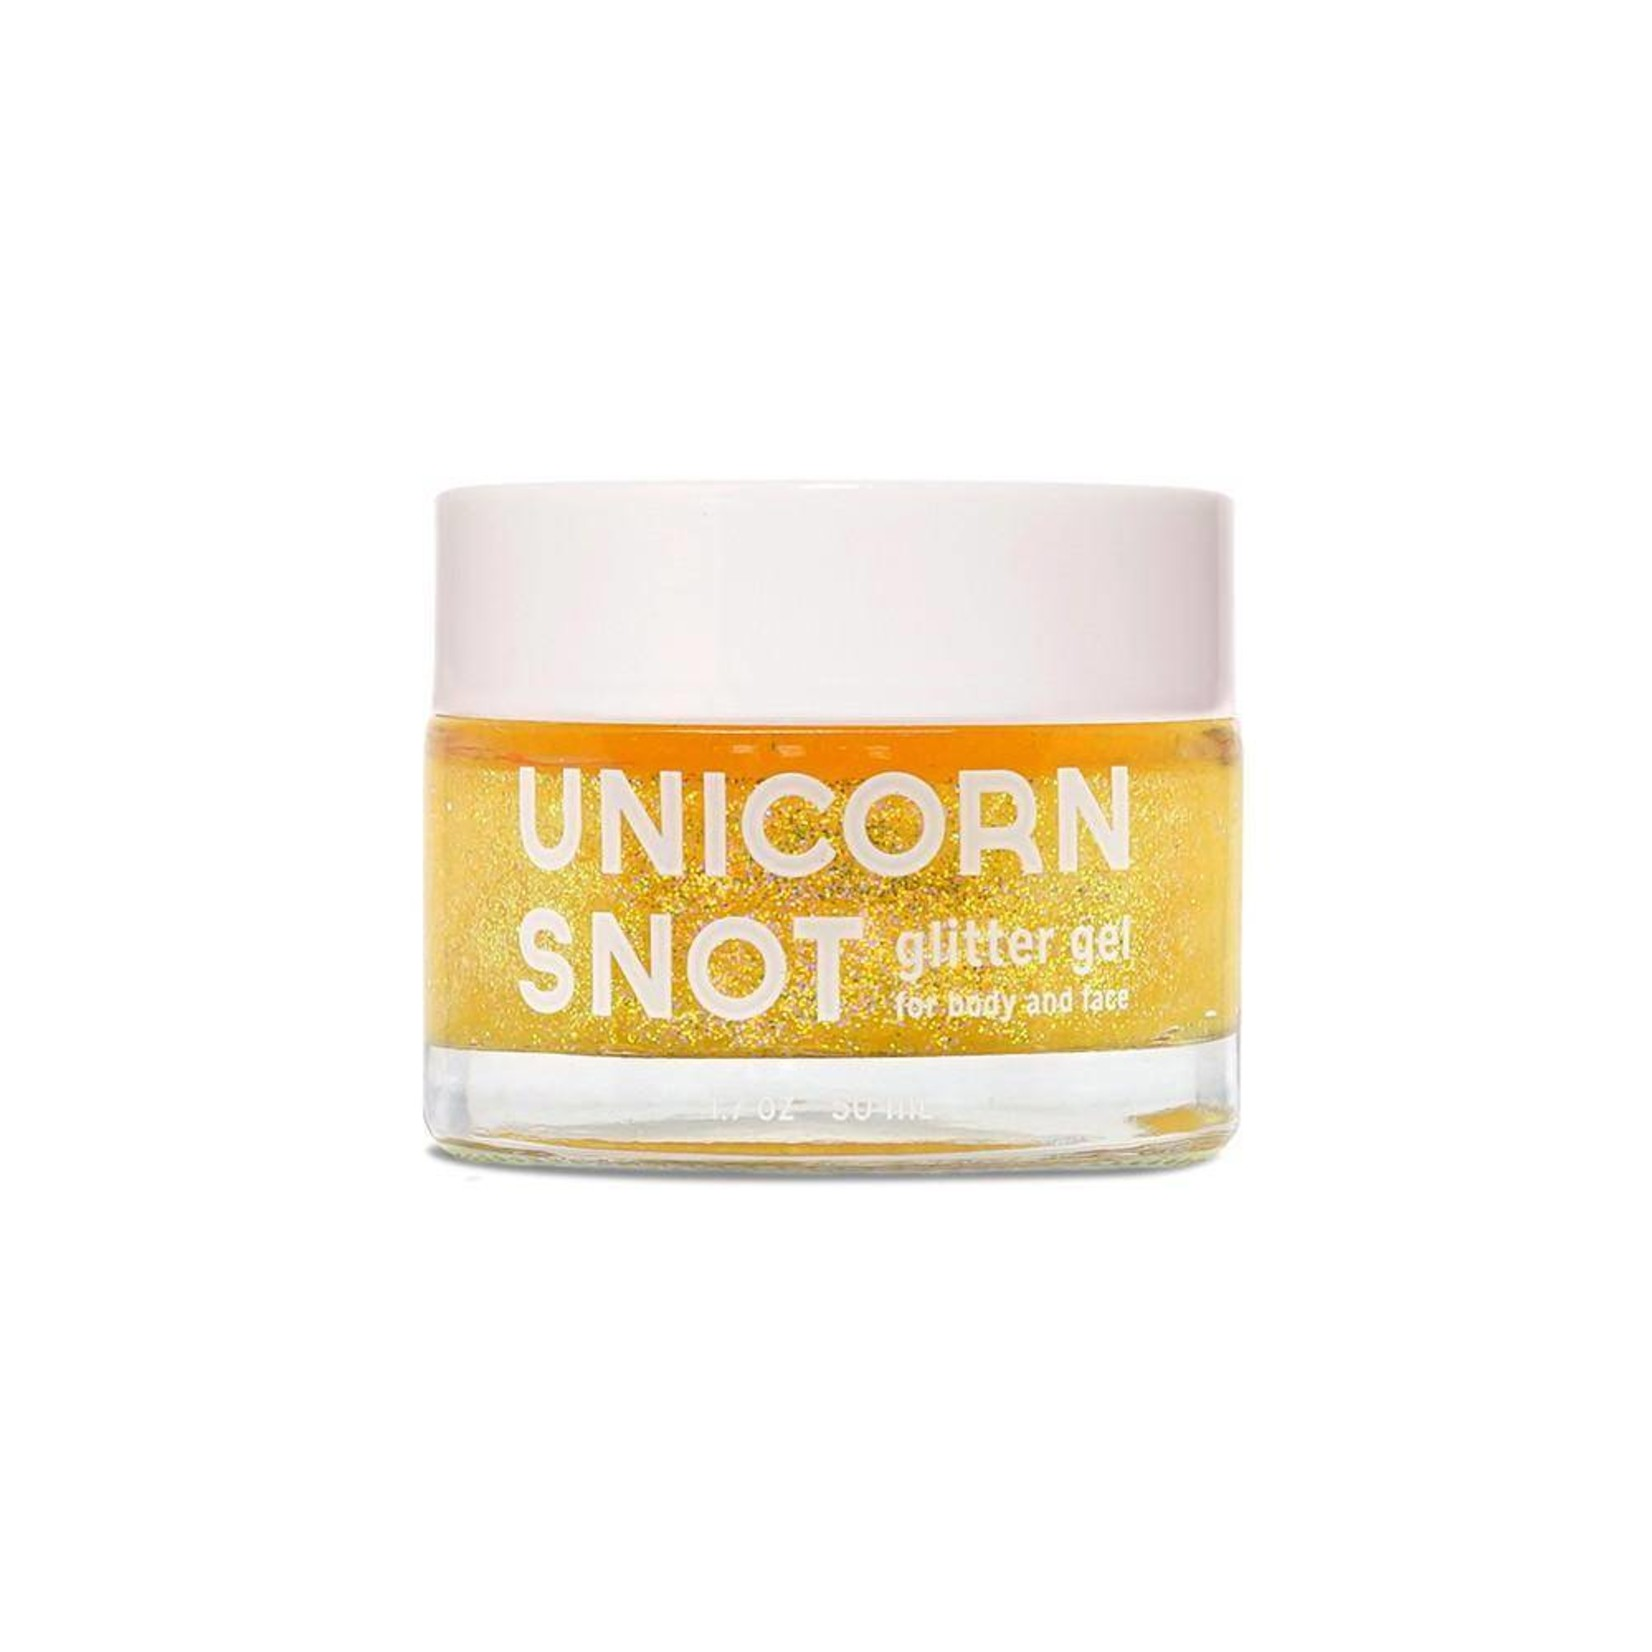 FCTRY Unicorn Snot